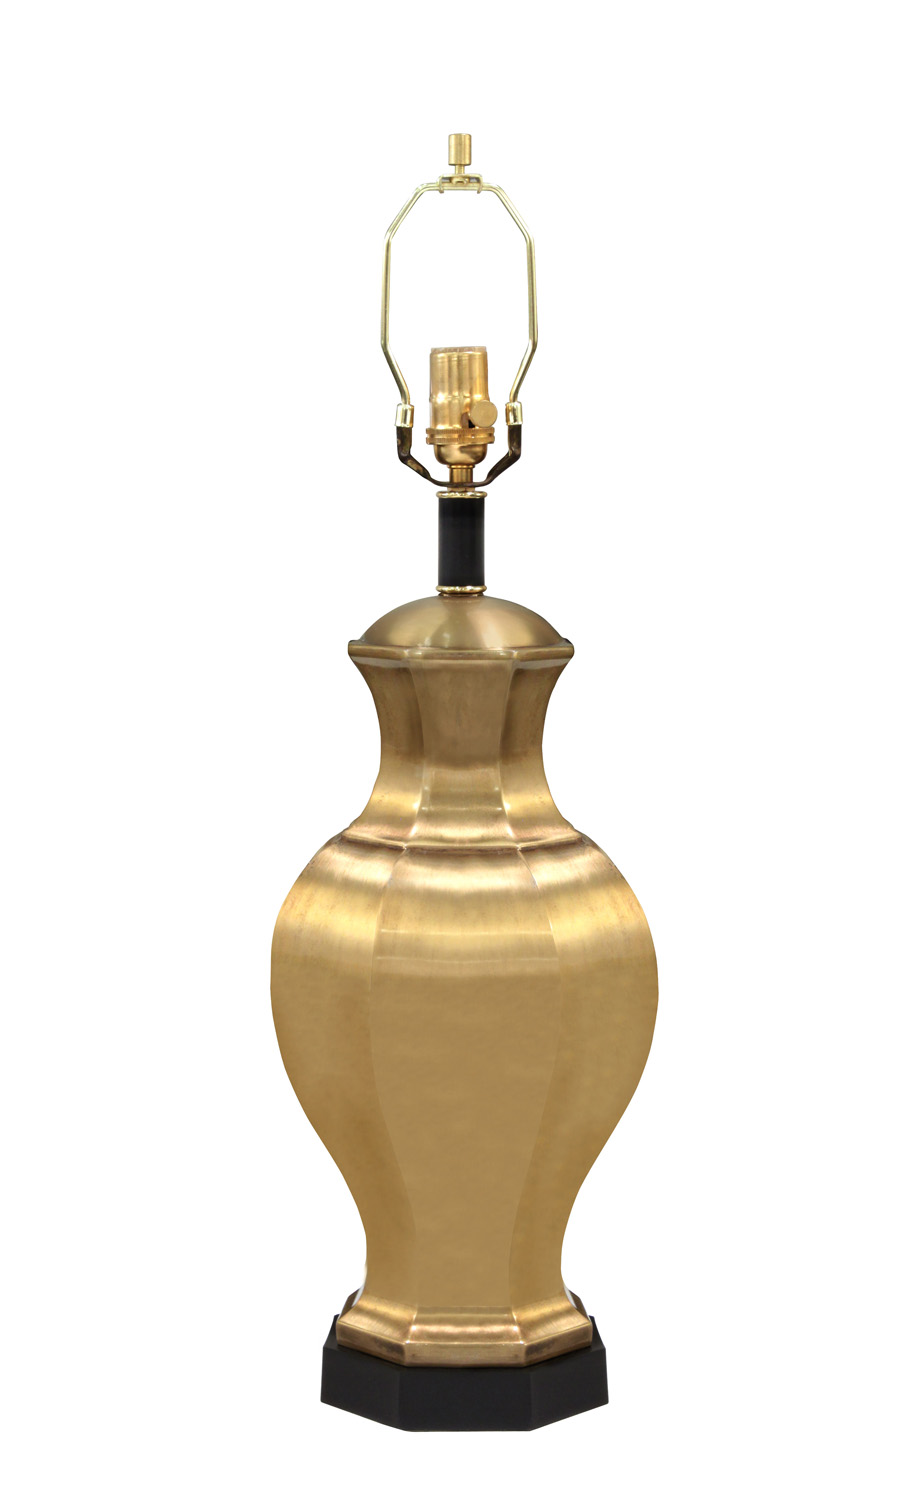 Chapman 50 brass jar tablelamps174 detail2 hires.jpg